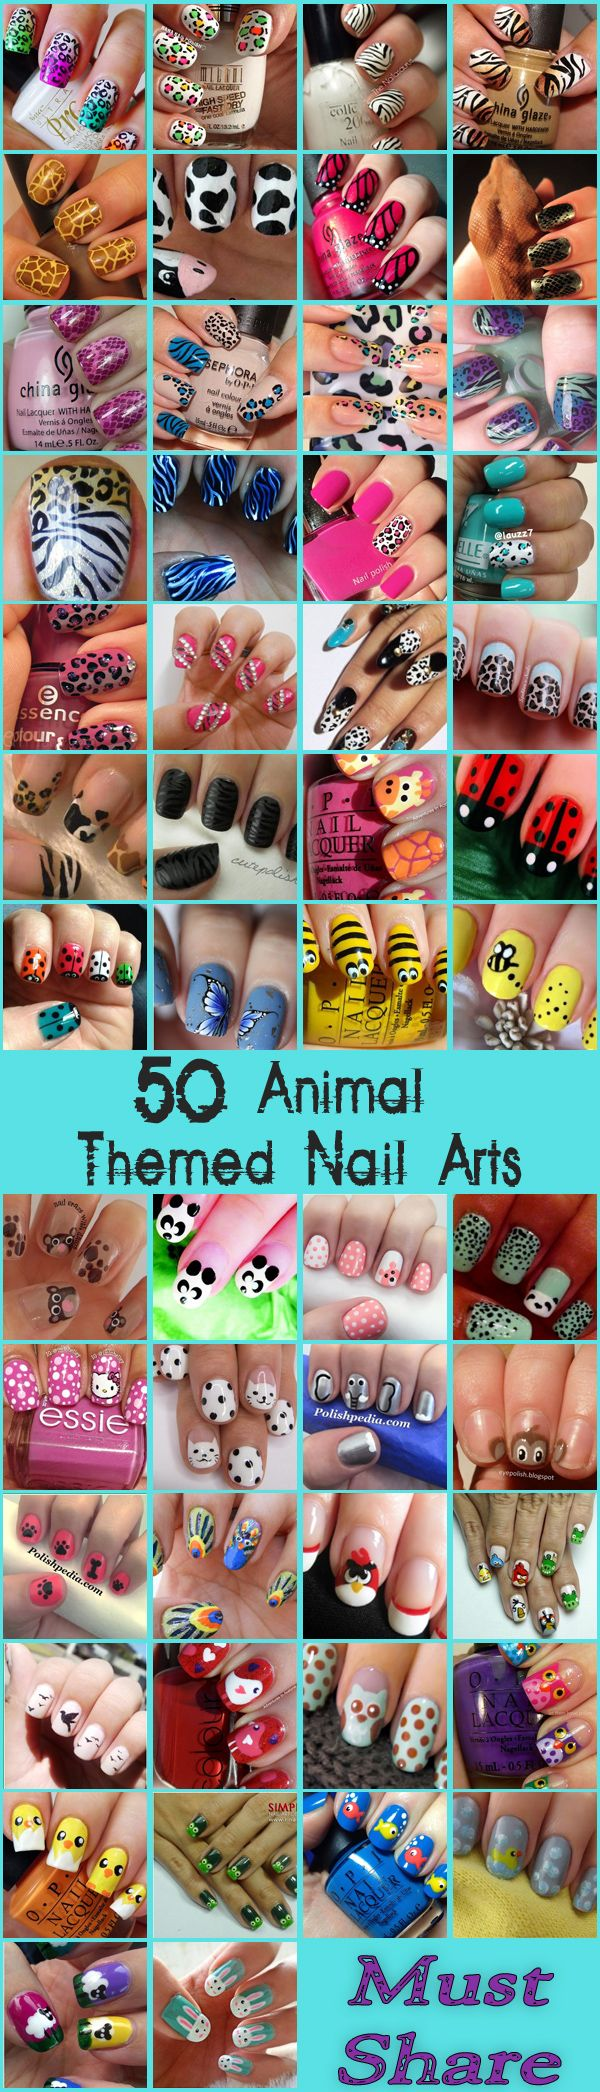 Inspire Designs  Nail Art   Art pakistan You Designs Art    online in Themed Nail shops  Nail Designs Art and Animal To